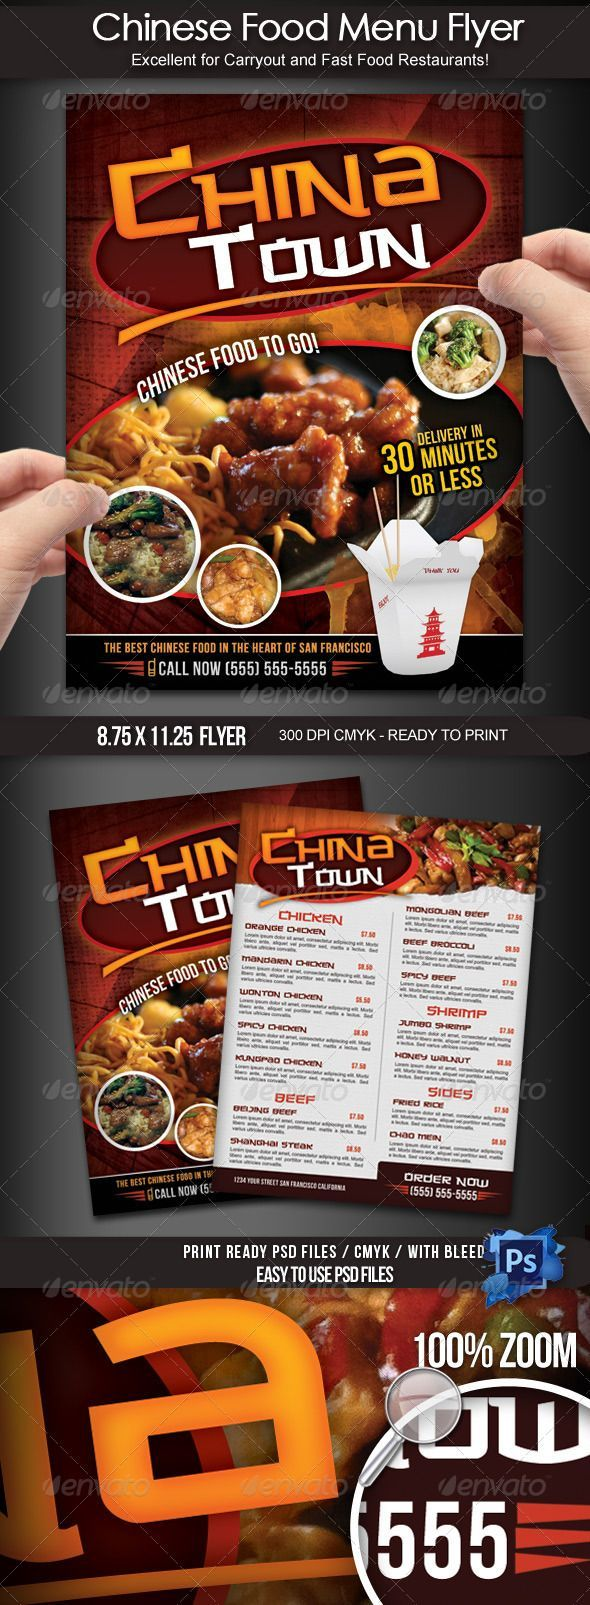 Chinese Food Menu Flyer  Chinese Food Menu Food Menu And Food